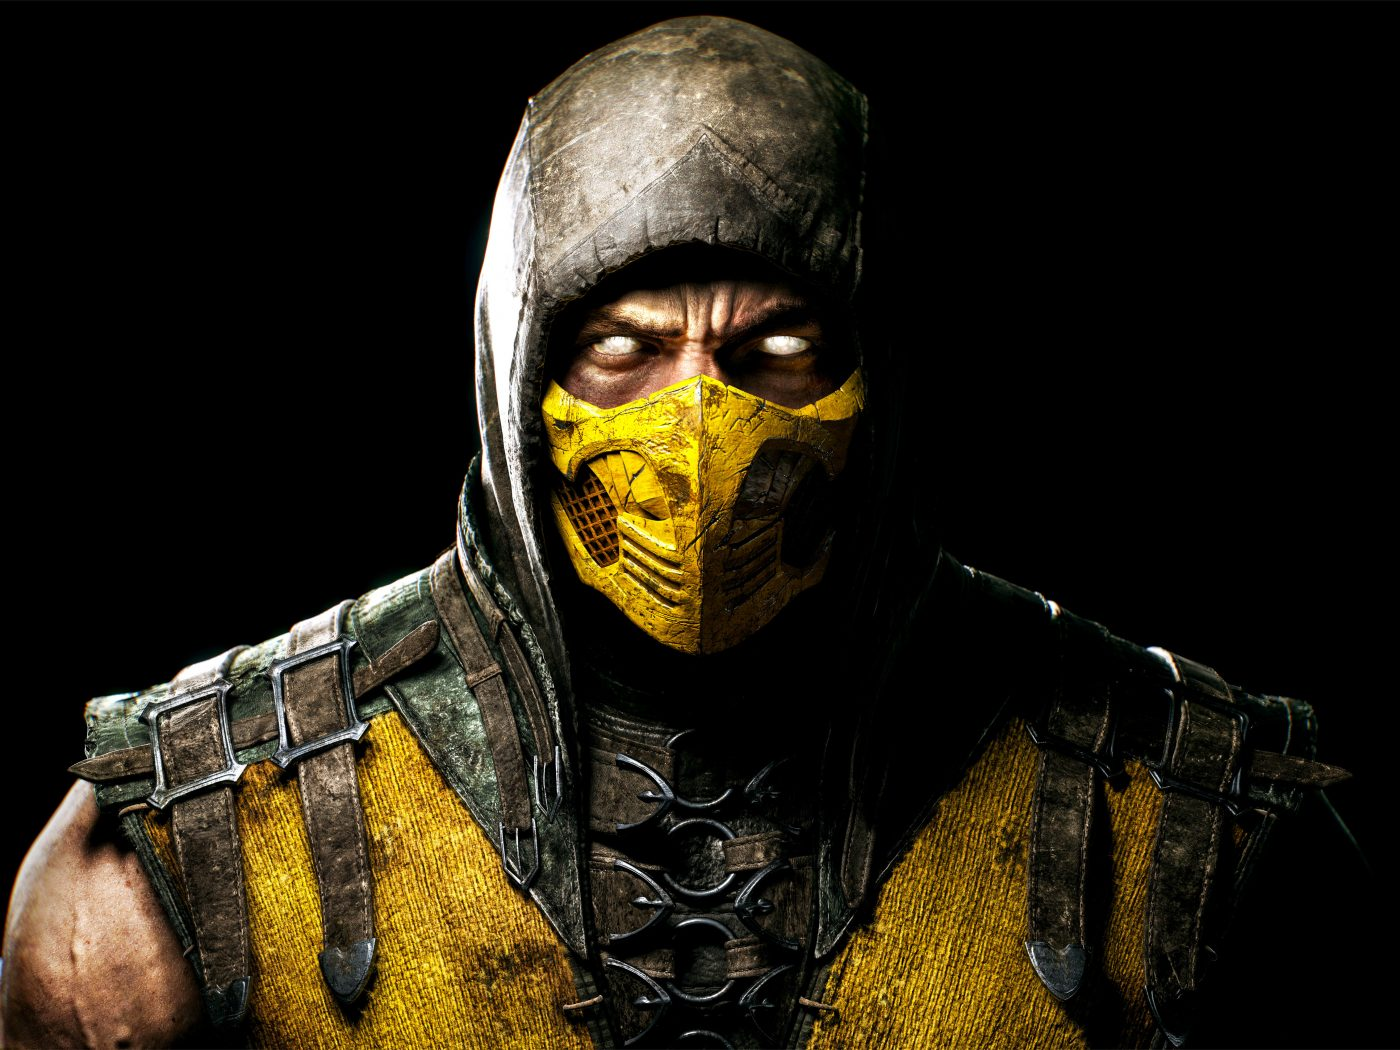 Mortal Kombat X Scorpio 3d Cool Video Games Wallpapers: Scorpion Mortal Kombat X Game PC 5K Wallpaper